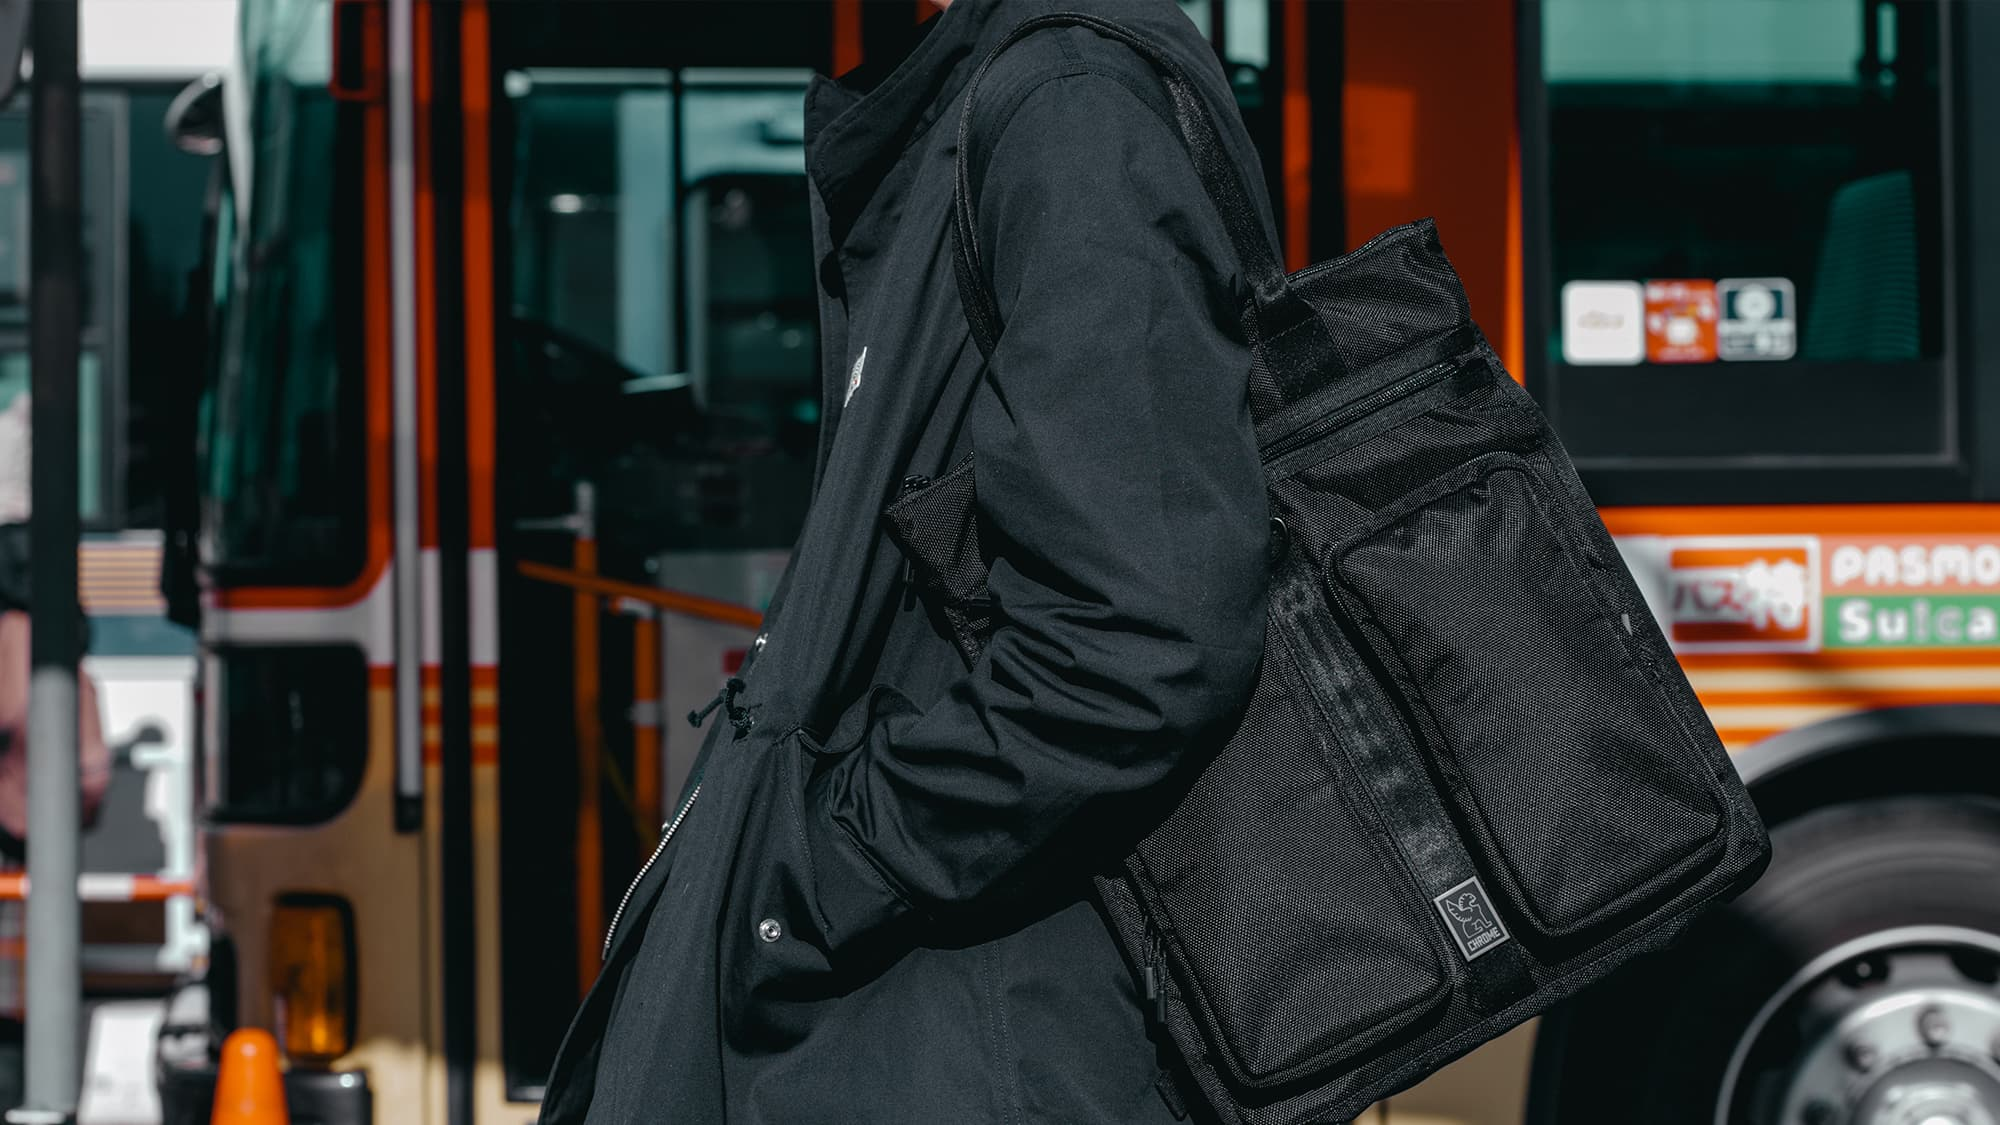 MXD Pace Tote, compact yet roomy